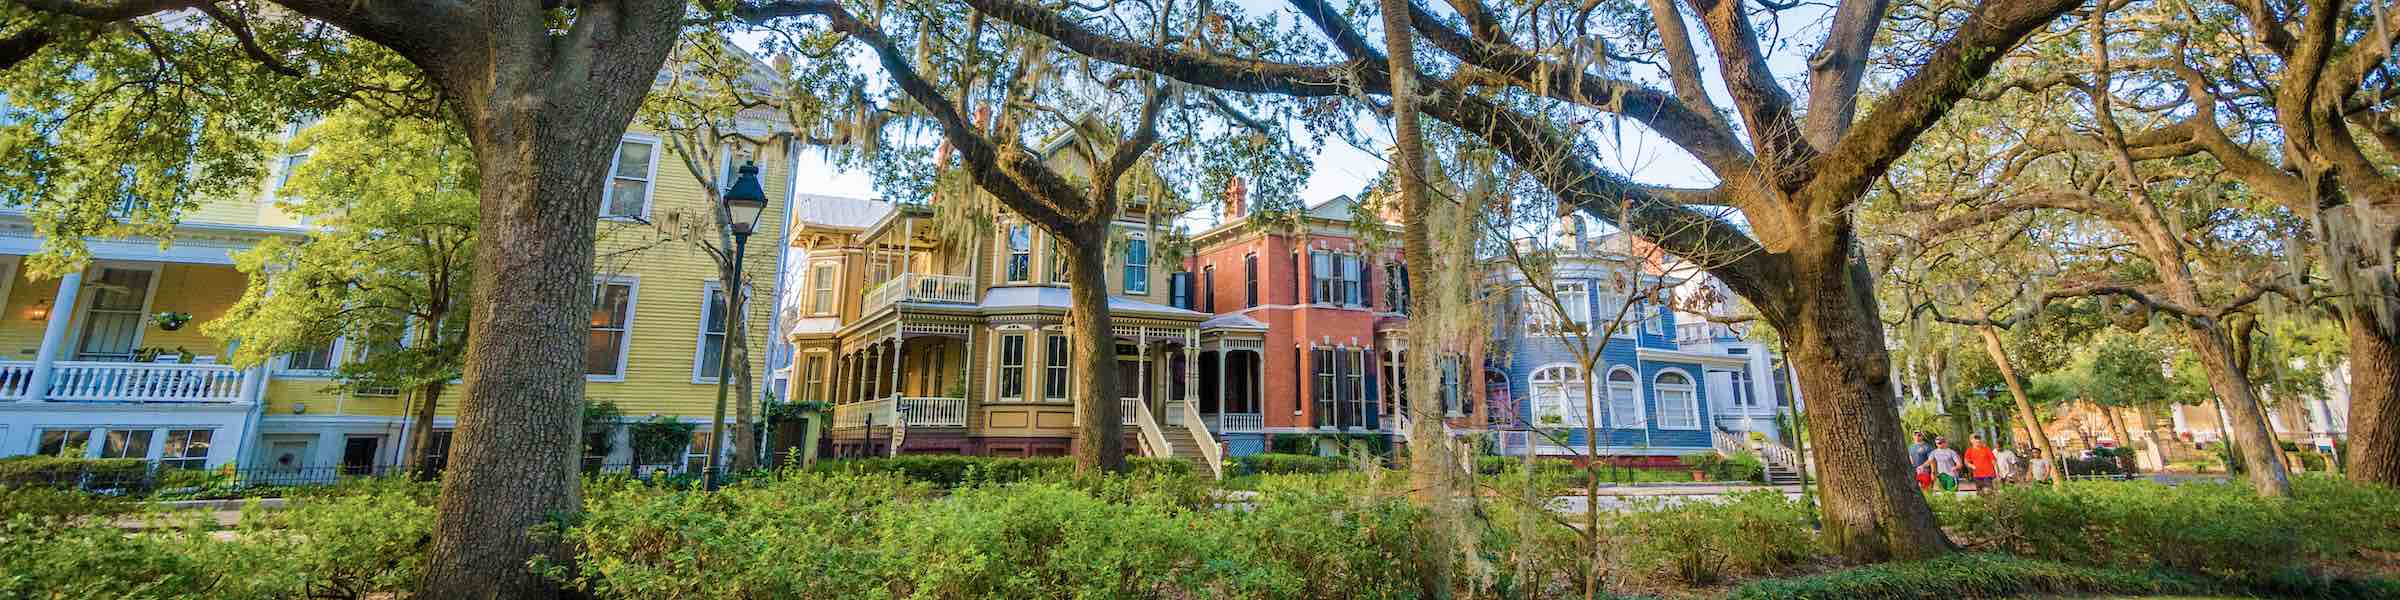 Colorful houses on Whitaker Street in Savannah, GA, as seen from Forsyth Park.